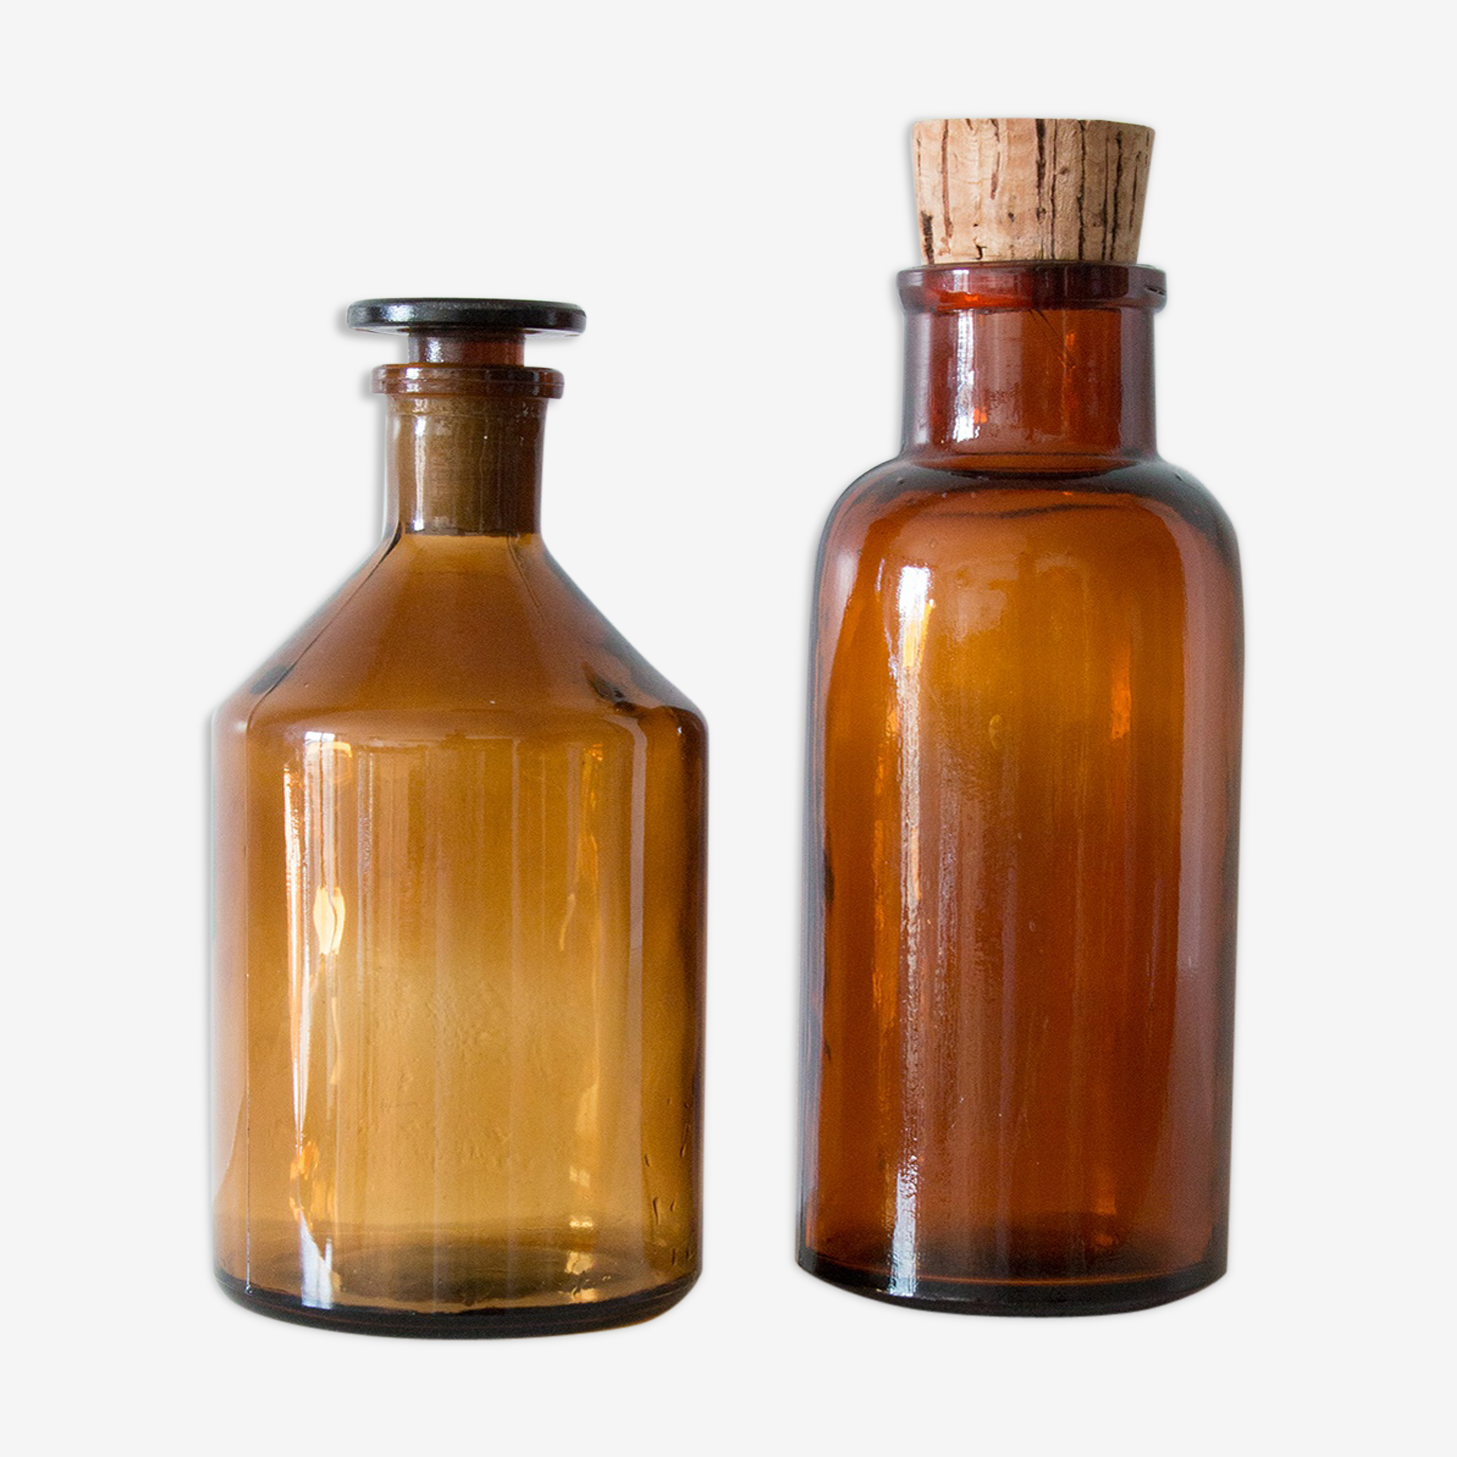 2 vials to pharmacy in amber glass